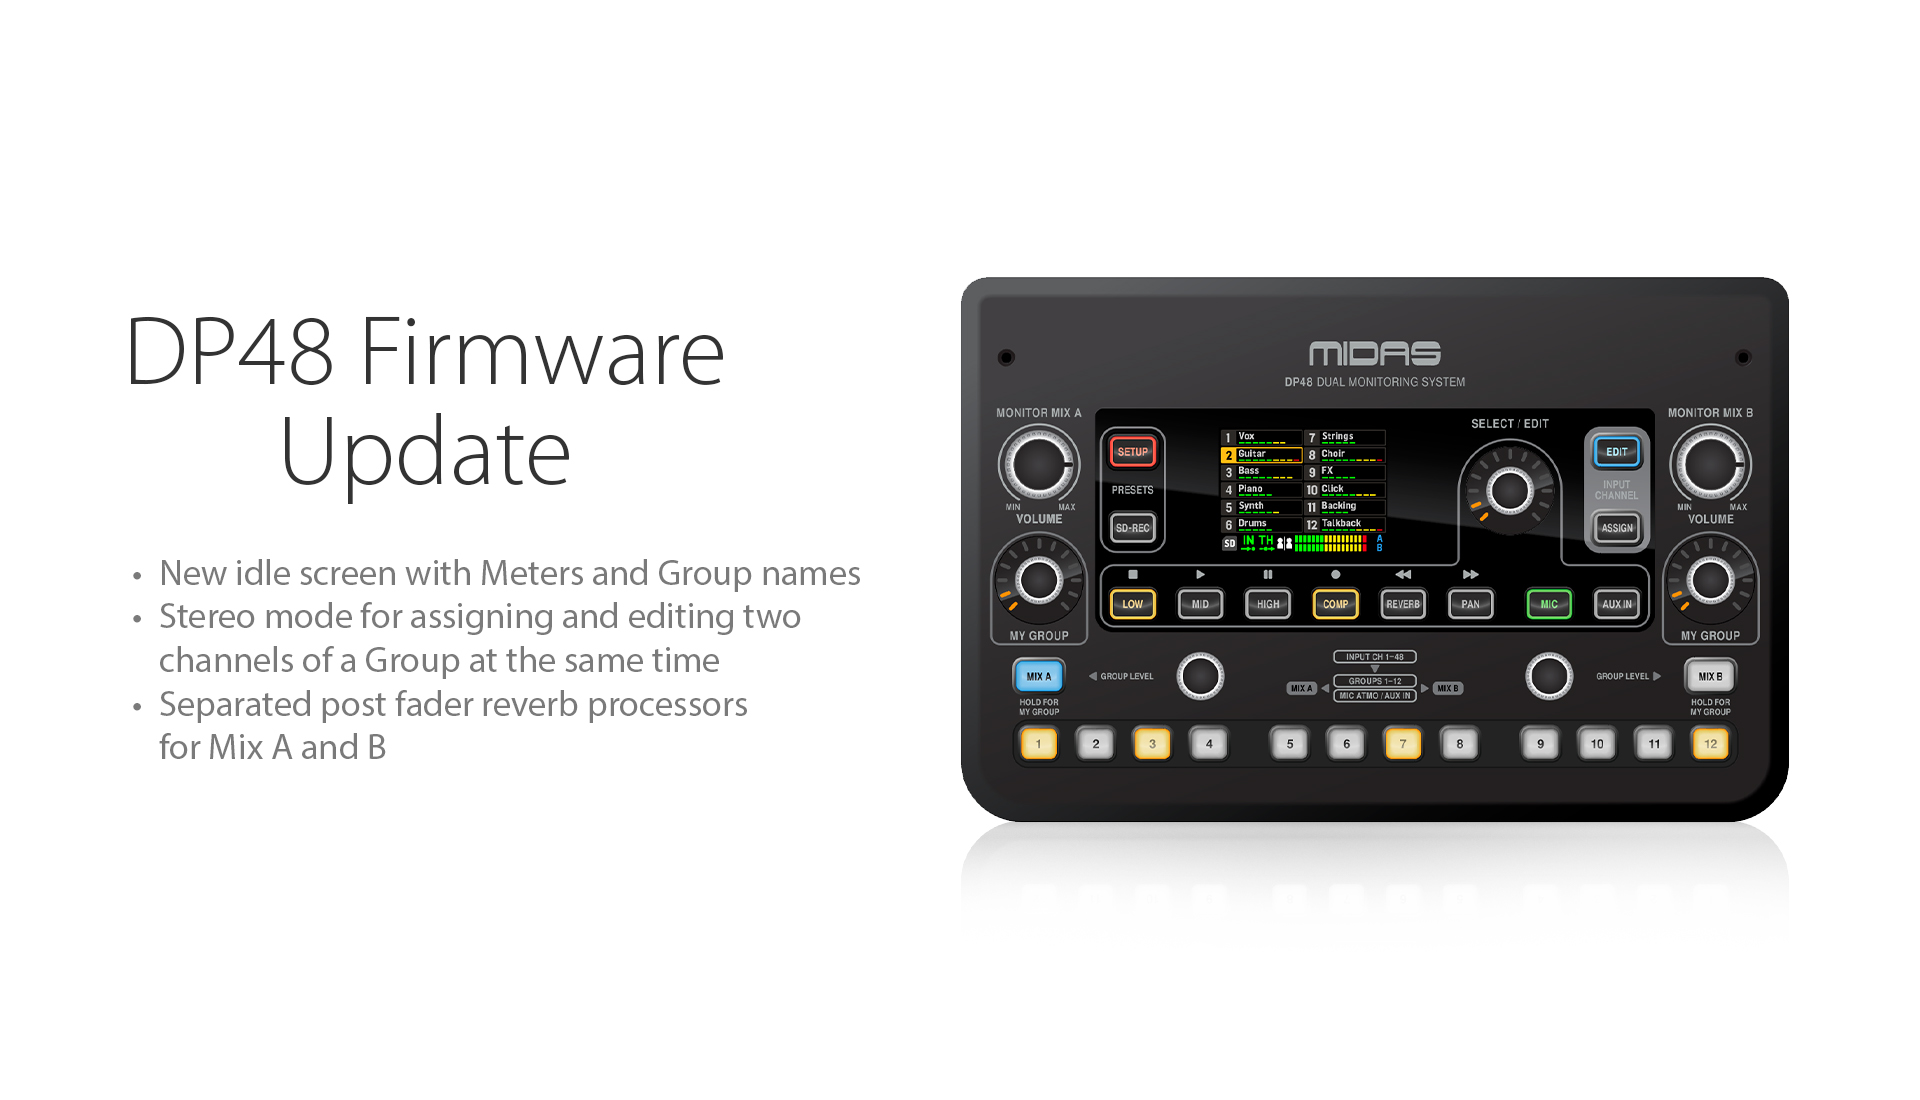 DP48 Firmware Update Version 1.3 - Now Available